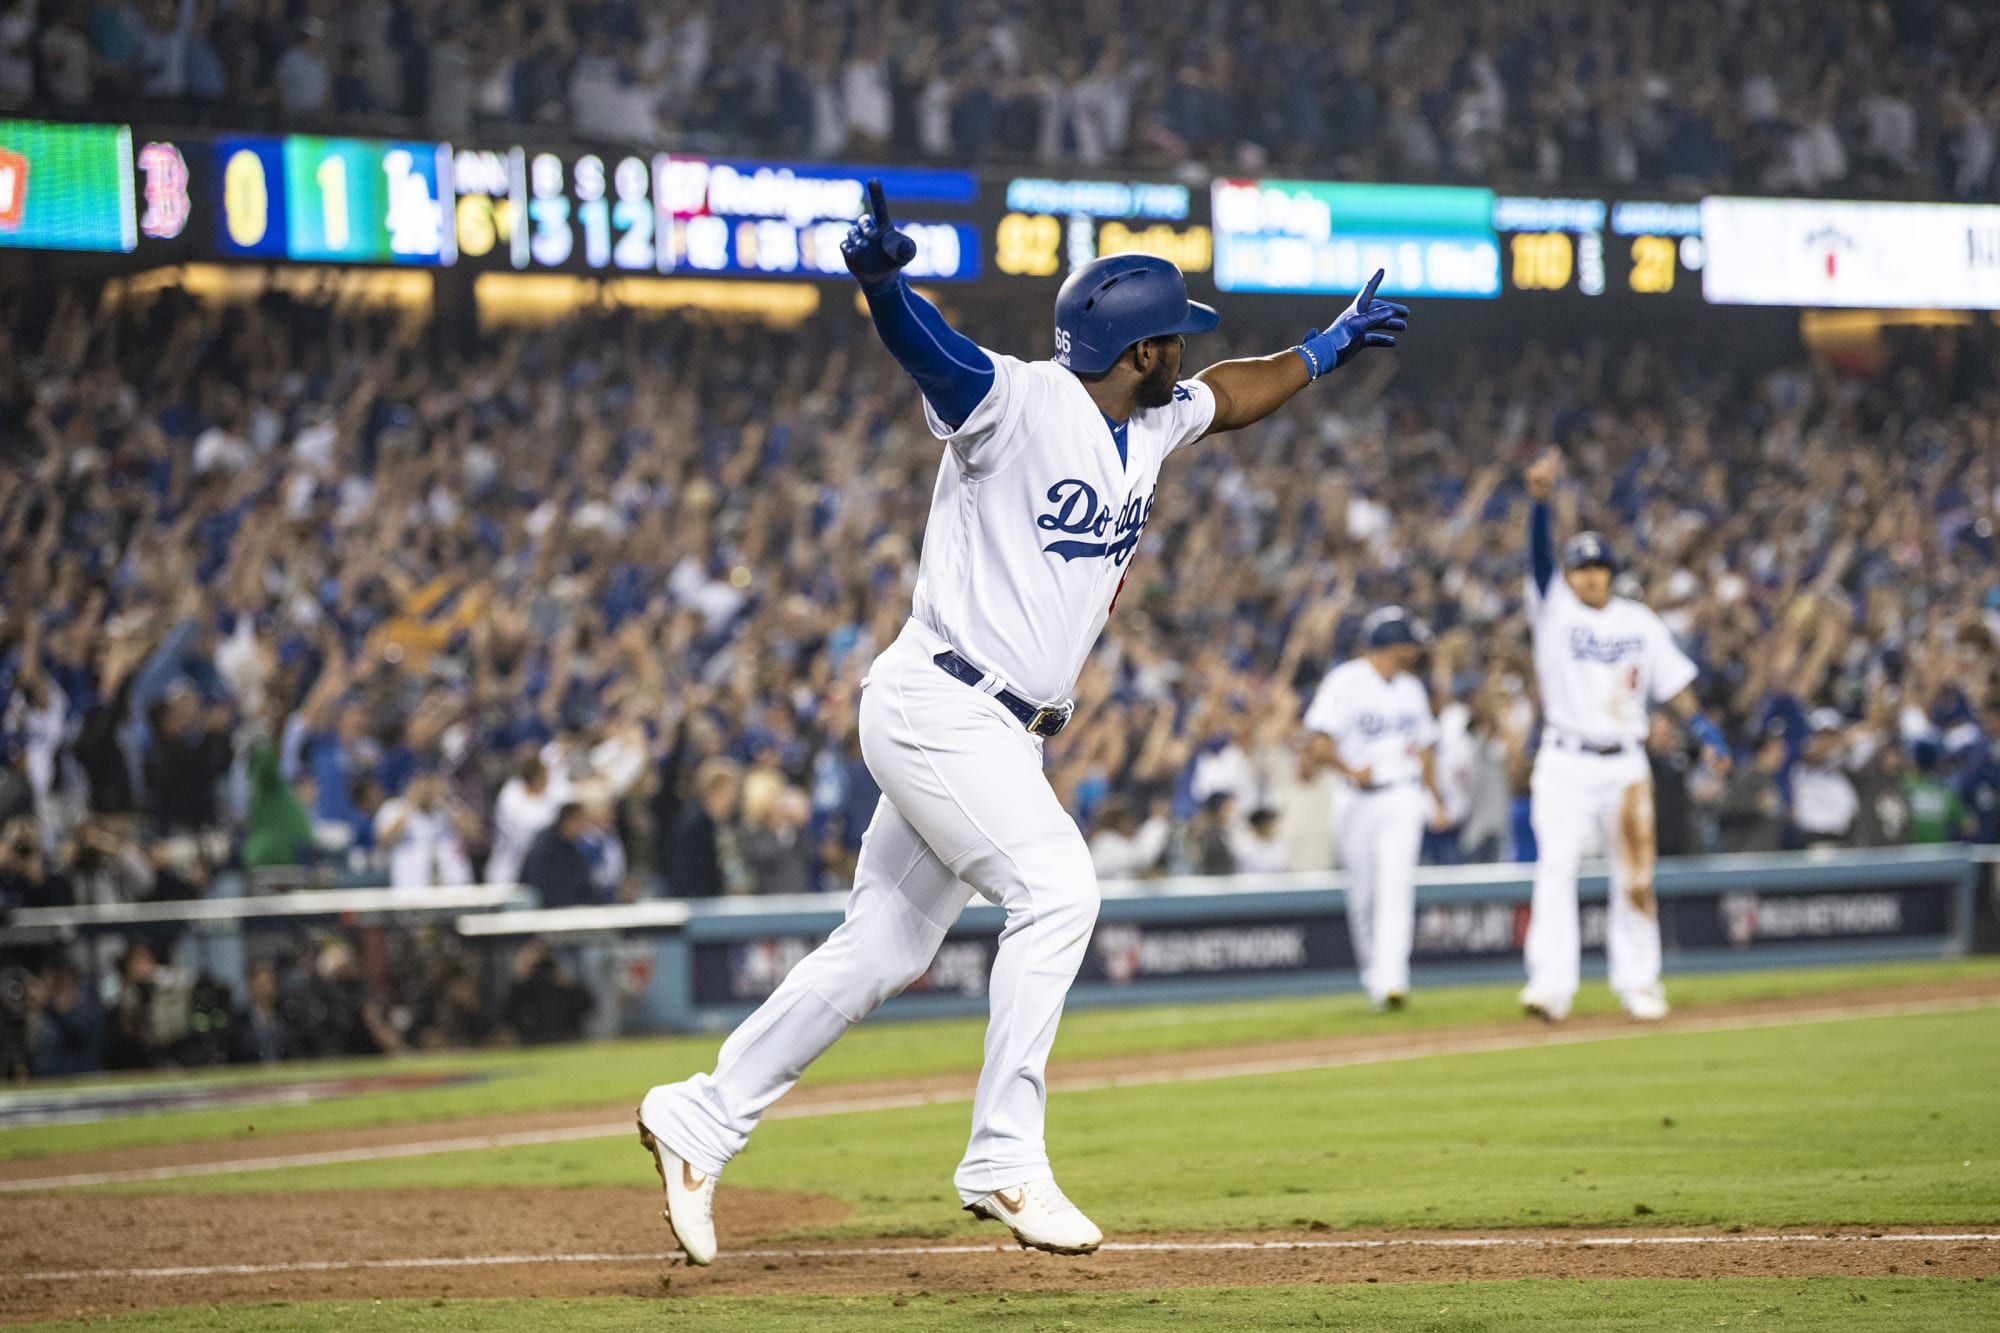 Los Angeles Dodgers: Yasiel Puig finally finds a home